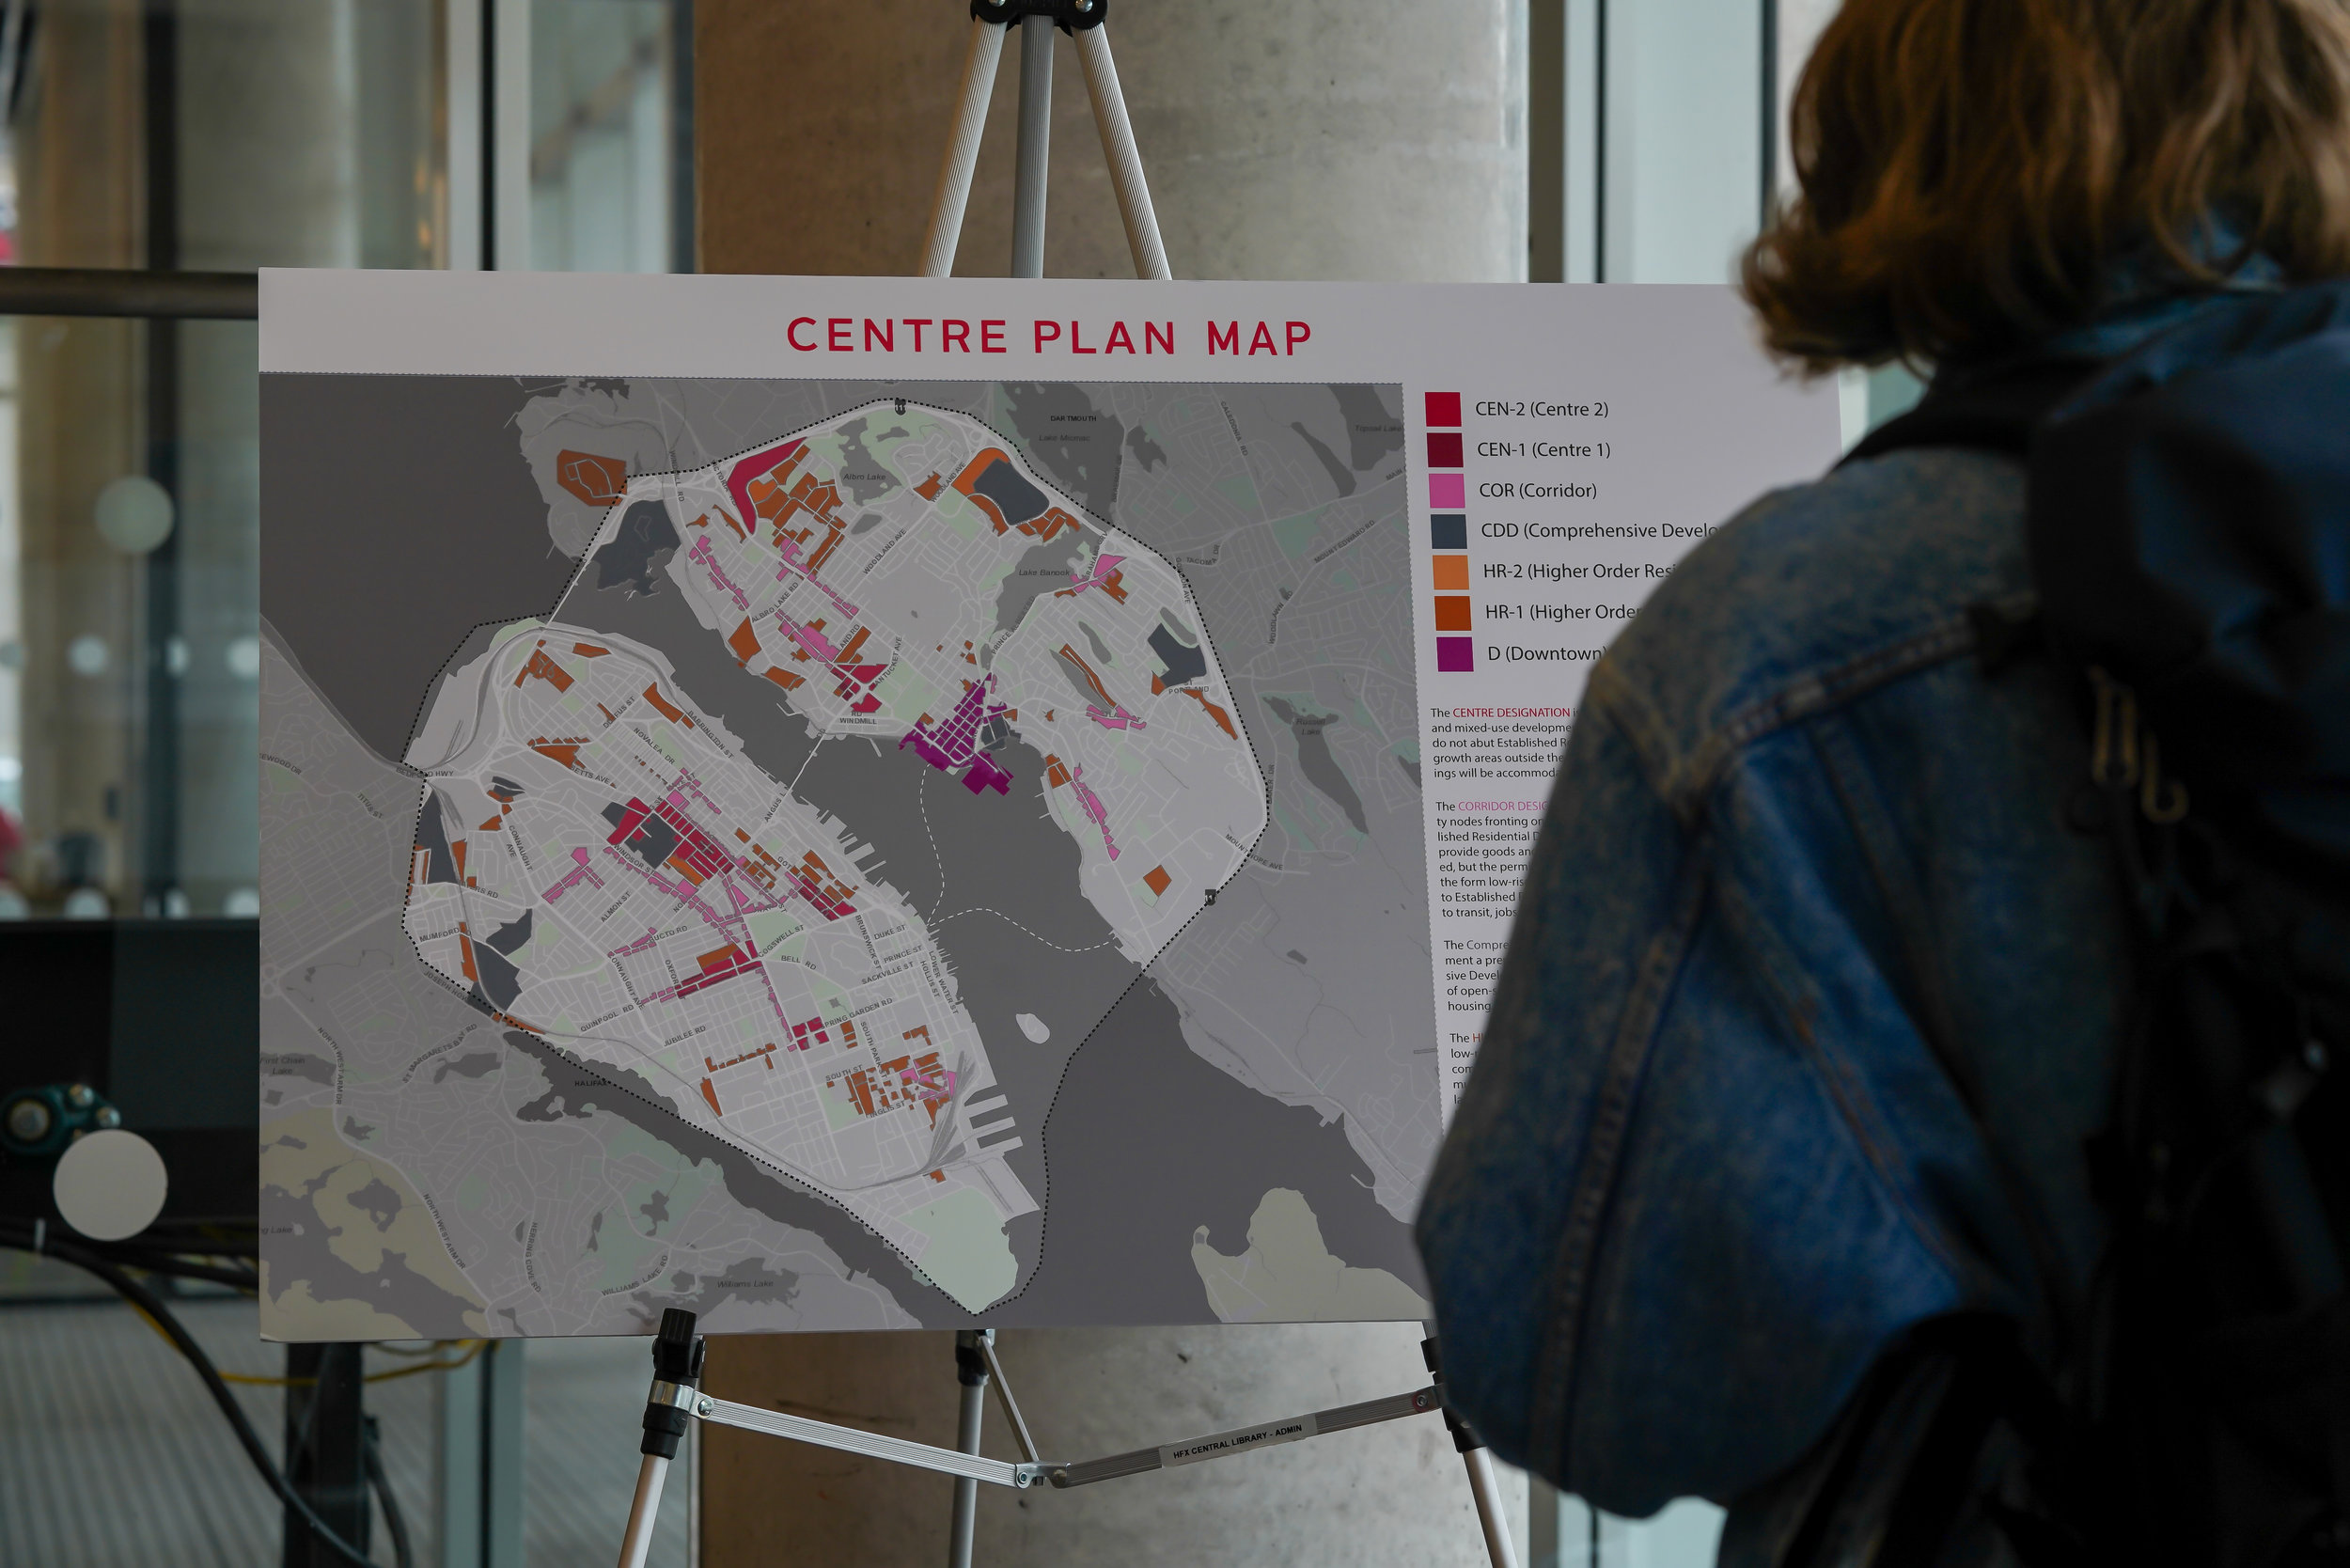 We launch our own projects and initiatives. - We are currently informing citizens in Halifax about what the Centre Plan entails and what it could mean for future affordable housing in Halifax. We are creating opportunities for citizens to have their voices heard through a participatory engagement process. Participate in the survey today!